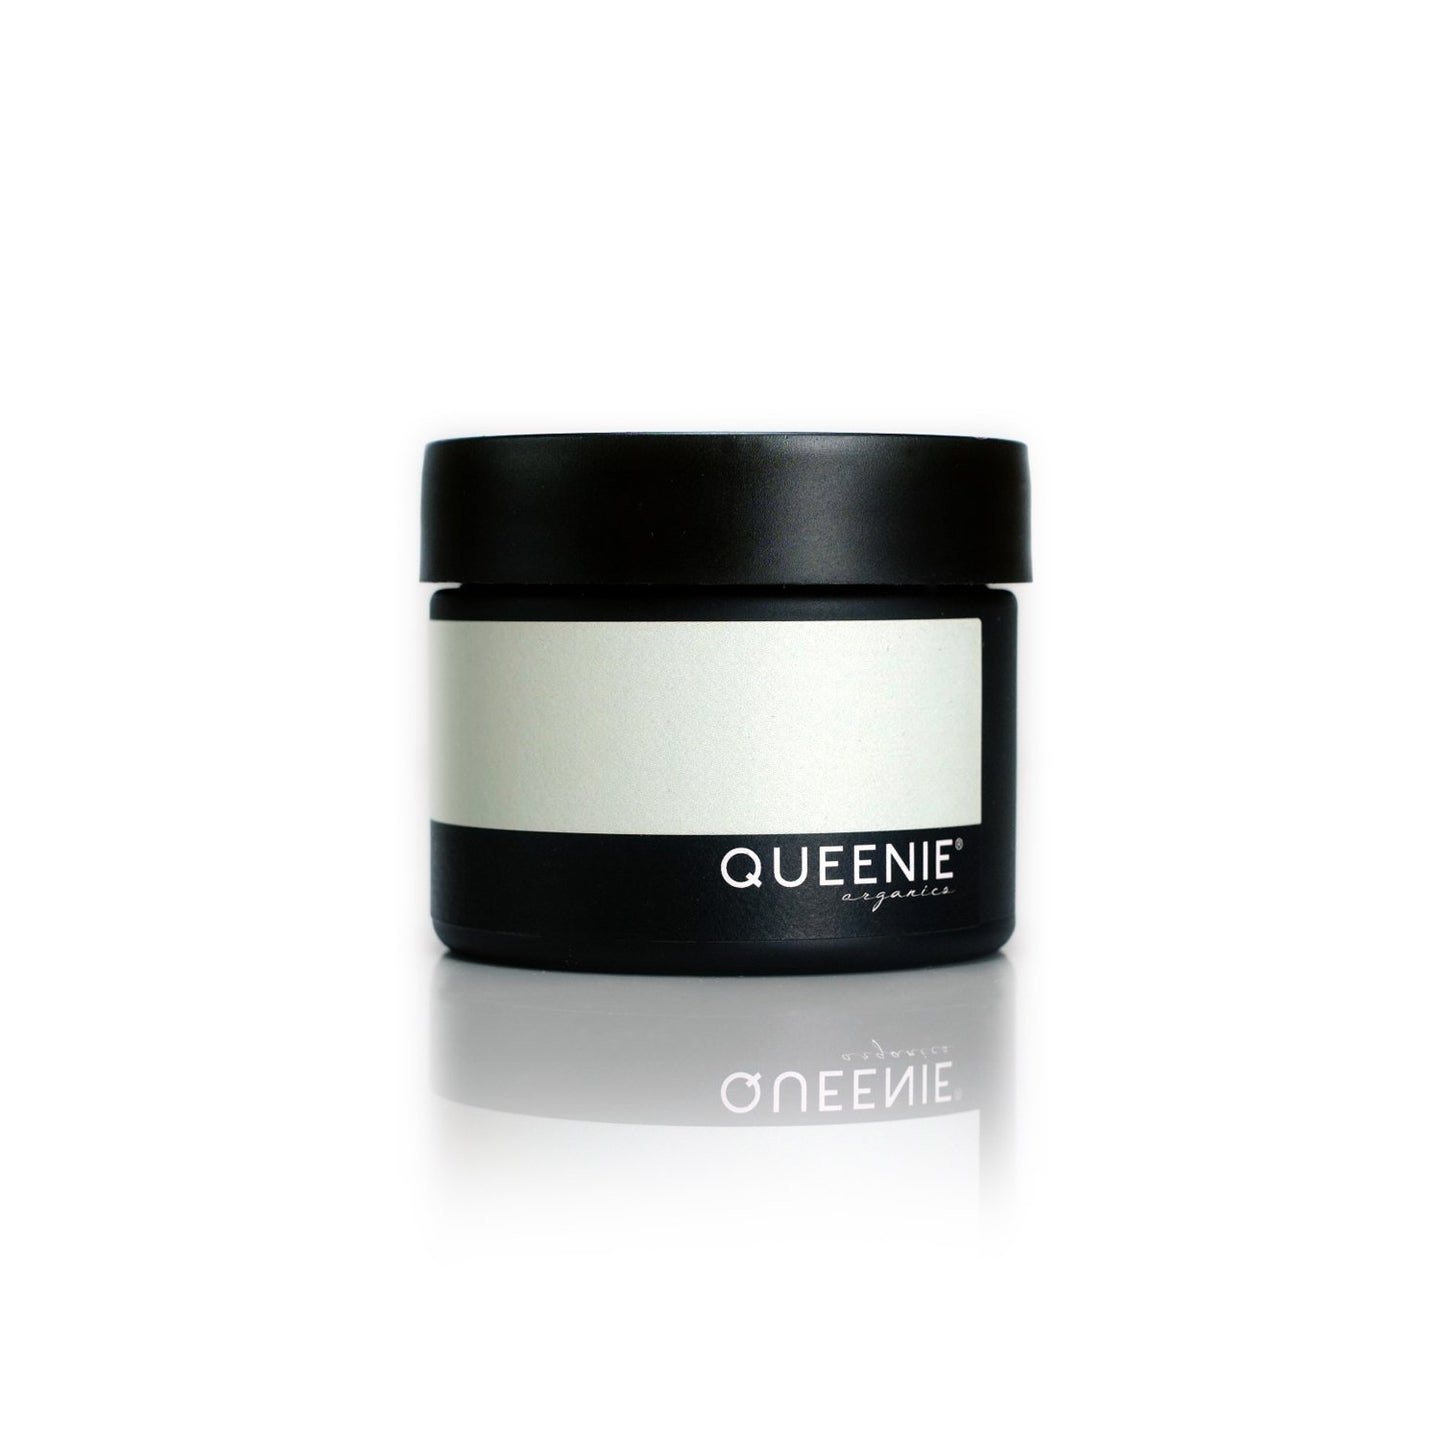 SANS CENT. HYDRATING FACE CREAM FOR SENSITIVE DRY SKIN beauty from Queenie Organics curated by pu·rist